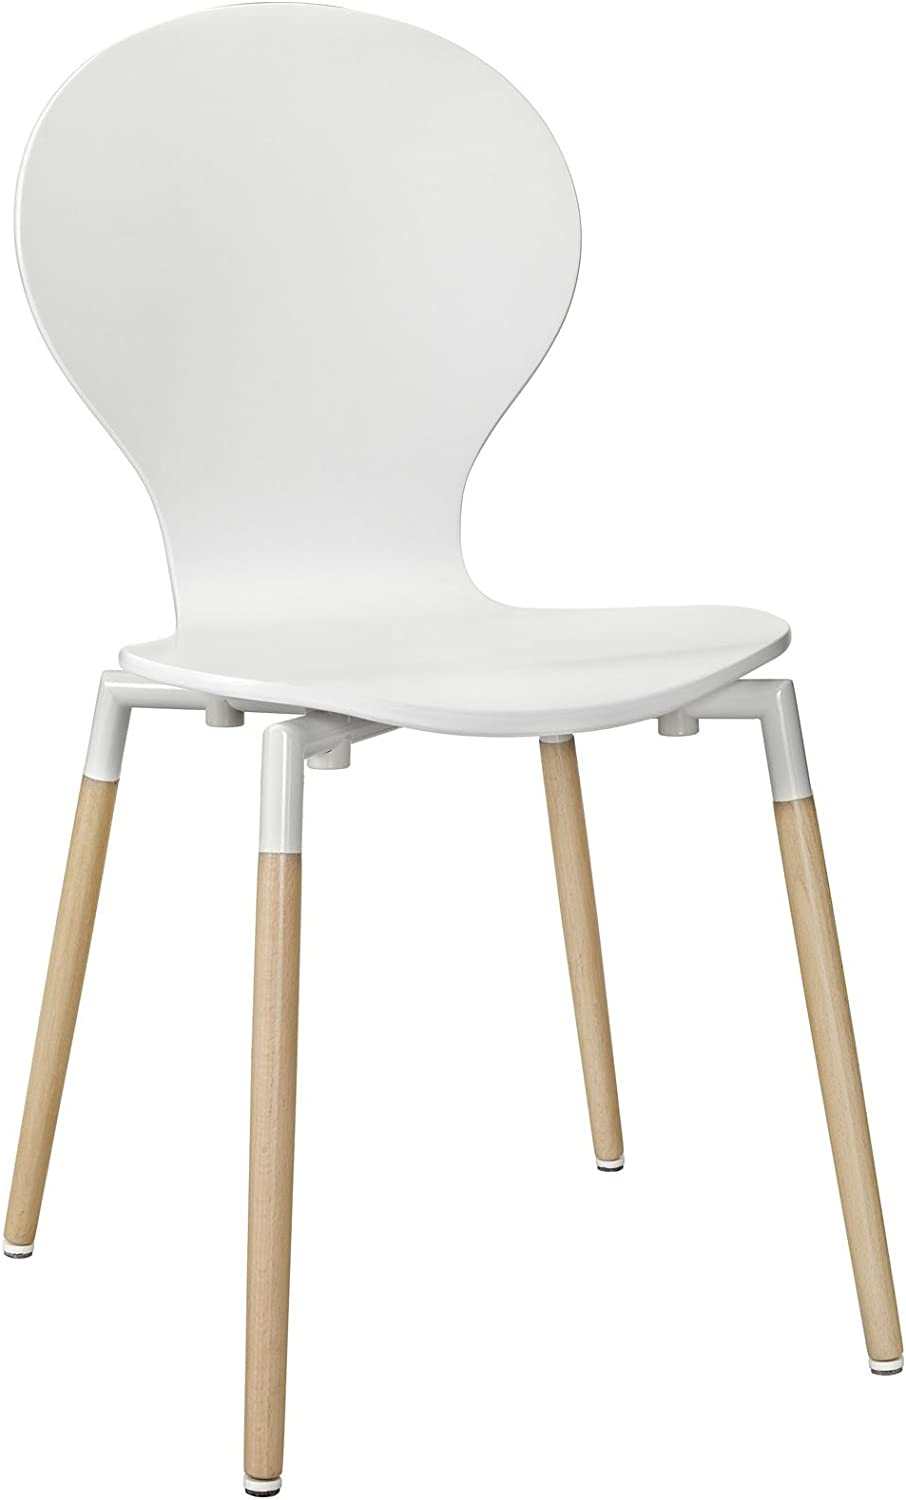 Modway Path Dining Chair, White